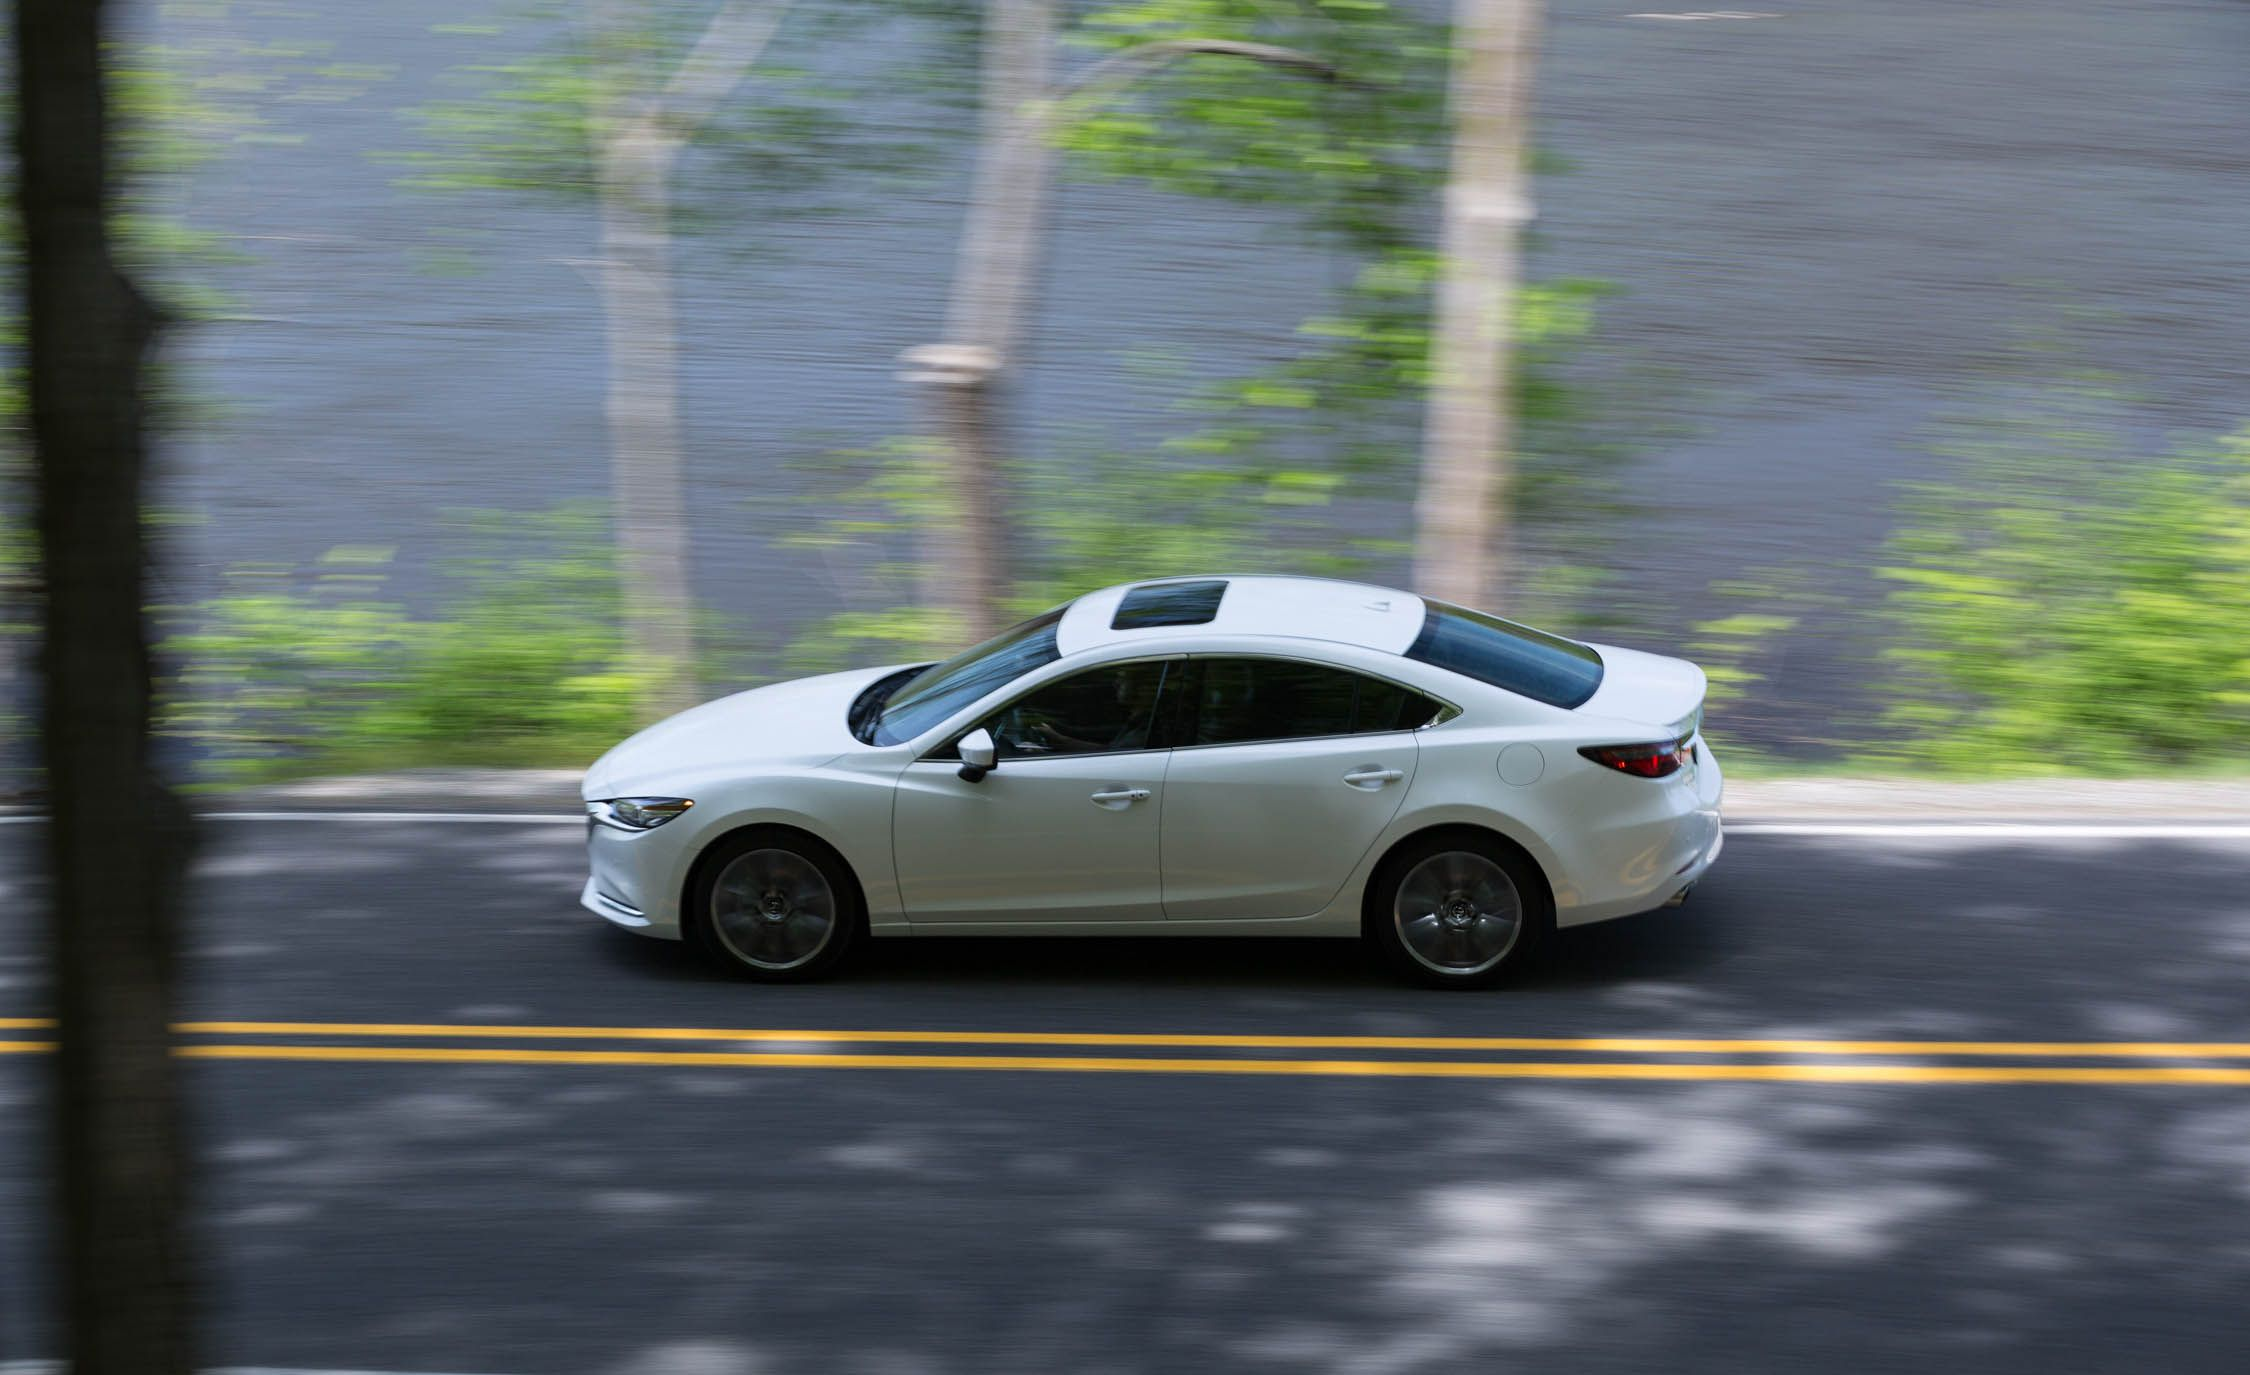 2019 Mazda 6 Reviews Price Photos And Specs 2008 Timing Marks Car Driver